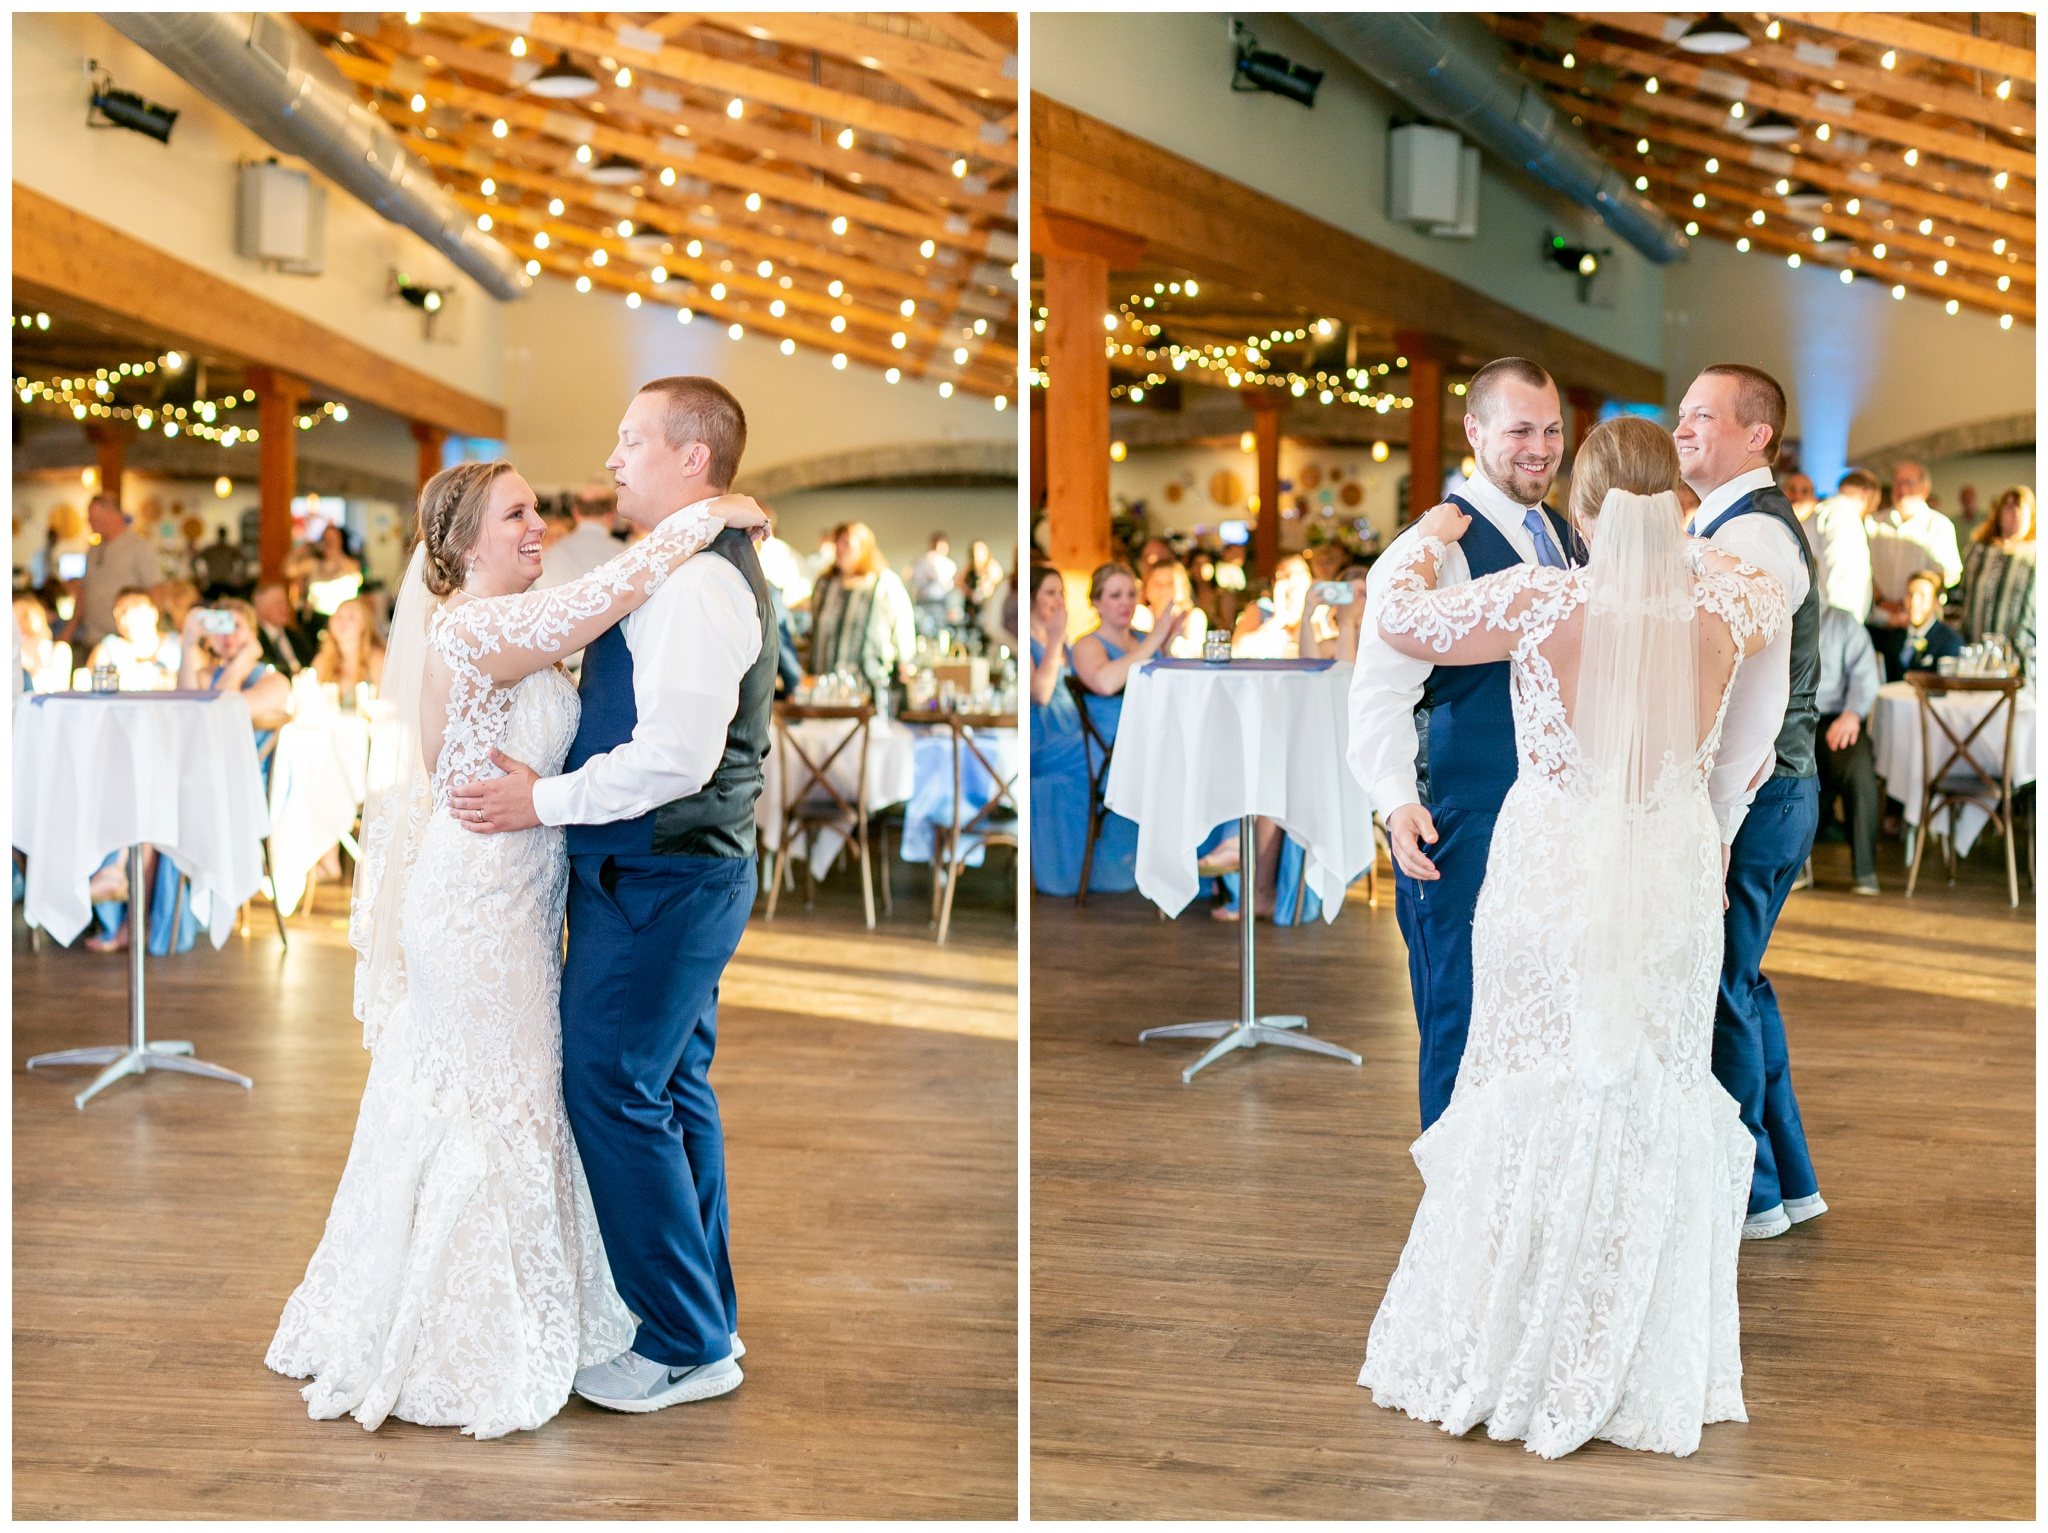 vennebu_hill_baraboo_wisconsin_wedding_madison_wisconsin_wedding_photographers_3071.jpg